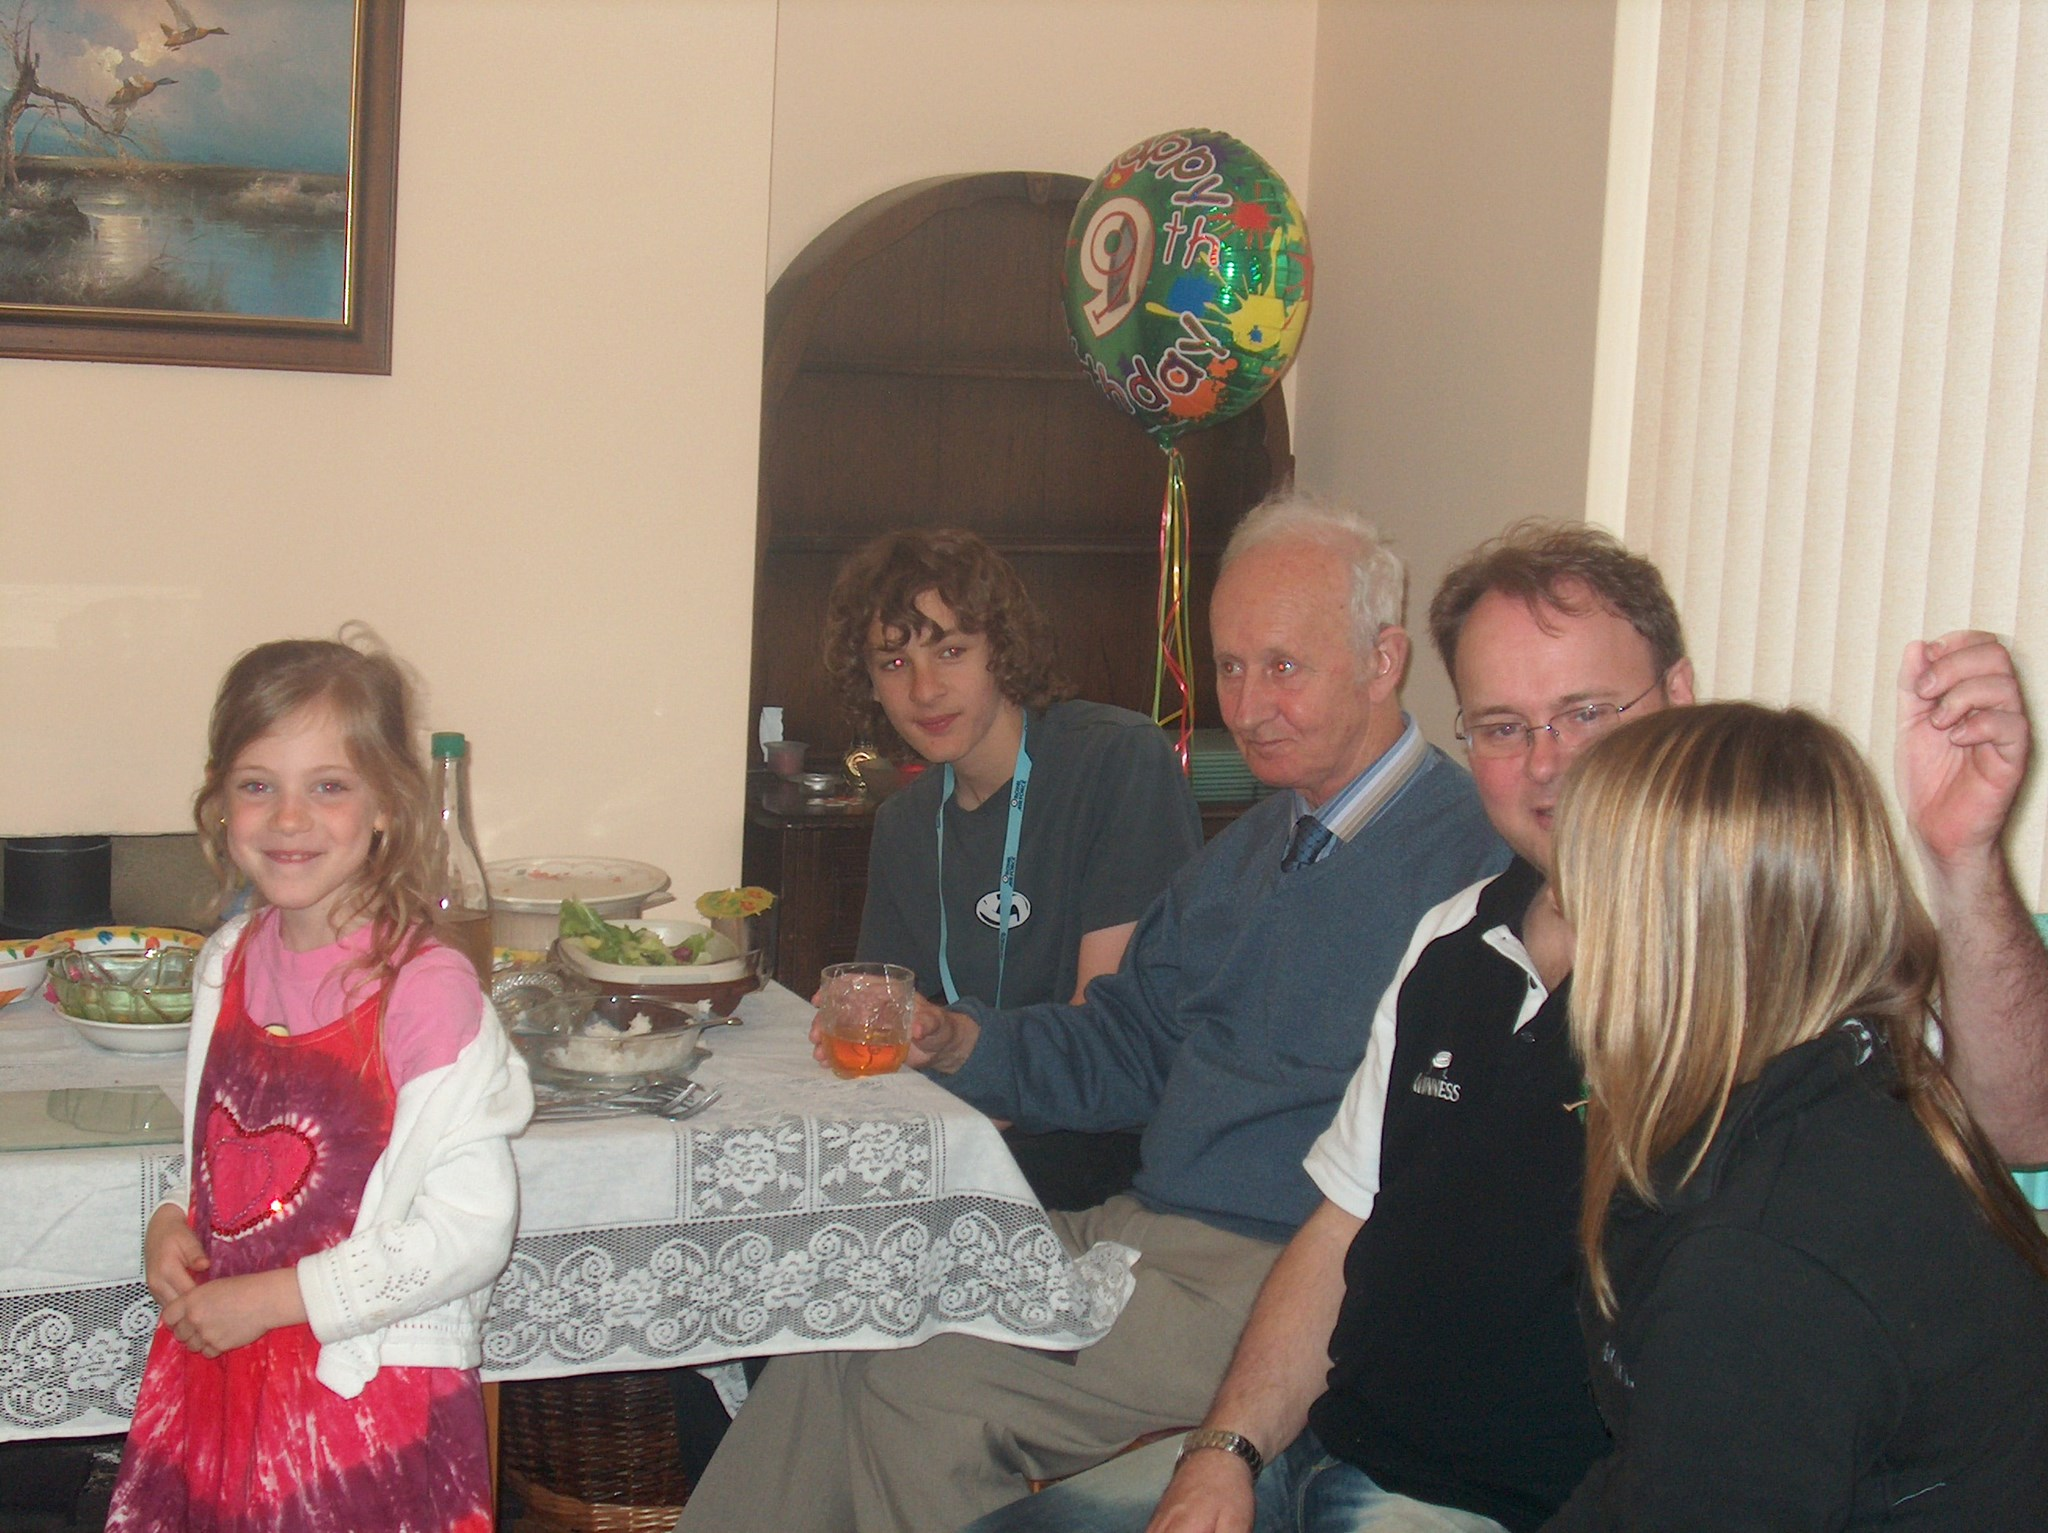 Someone's birthday, from left to right, Iona, Alex, John, Kevin and Lauren